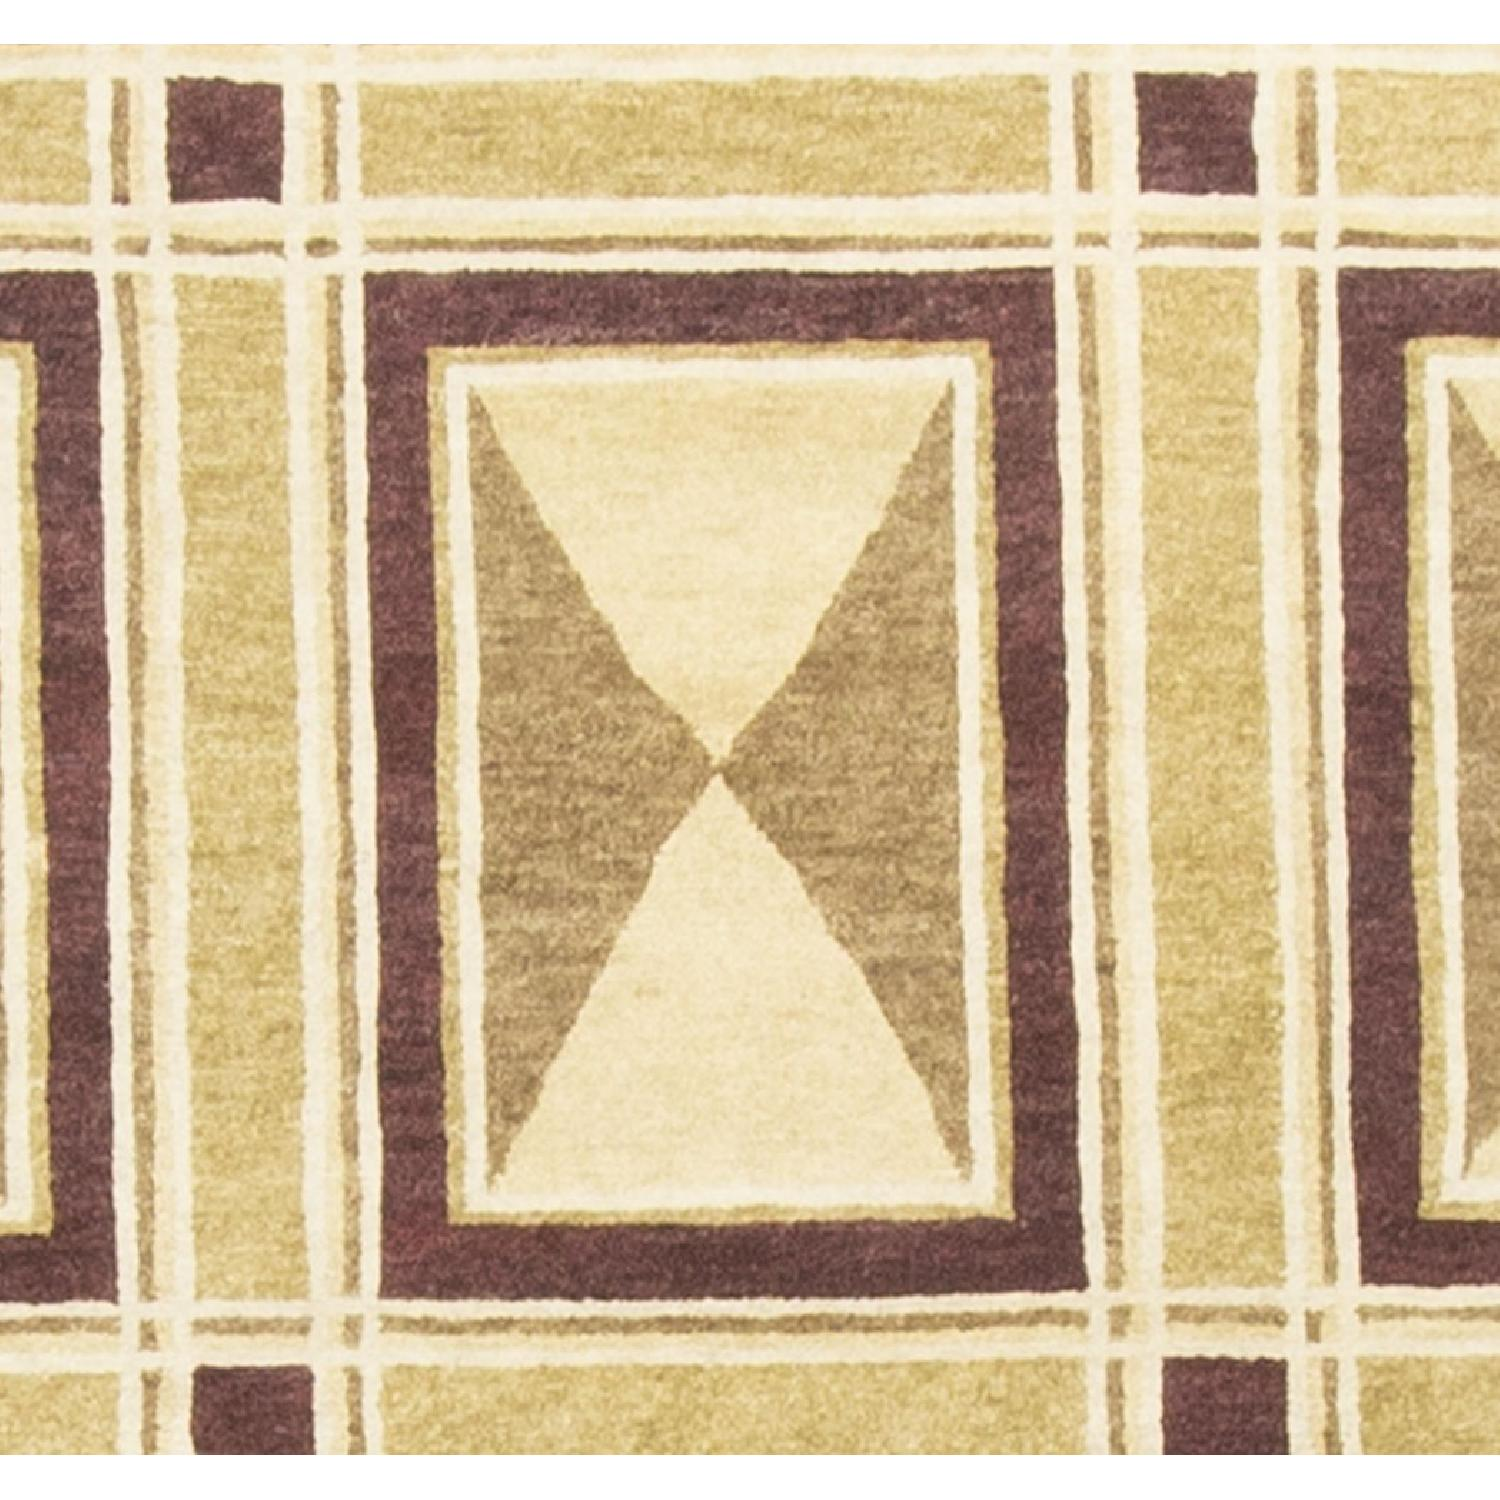 Modern Contemporary Hand Knotted Wool Rug in Red/Beige/Brown - image-1